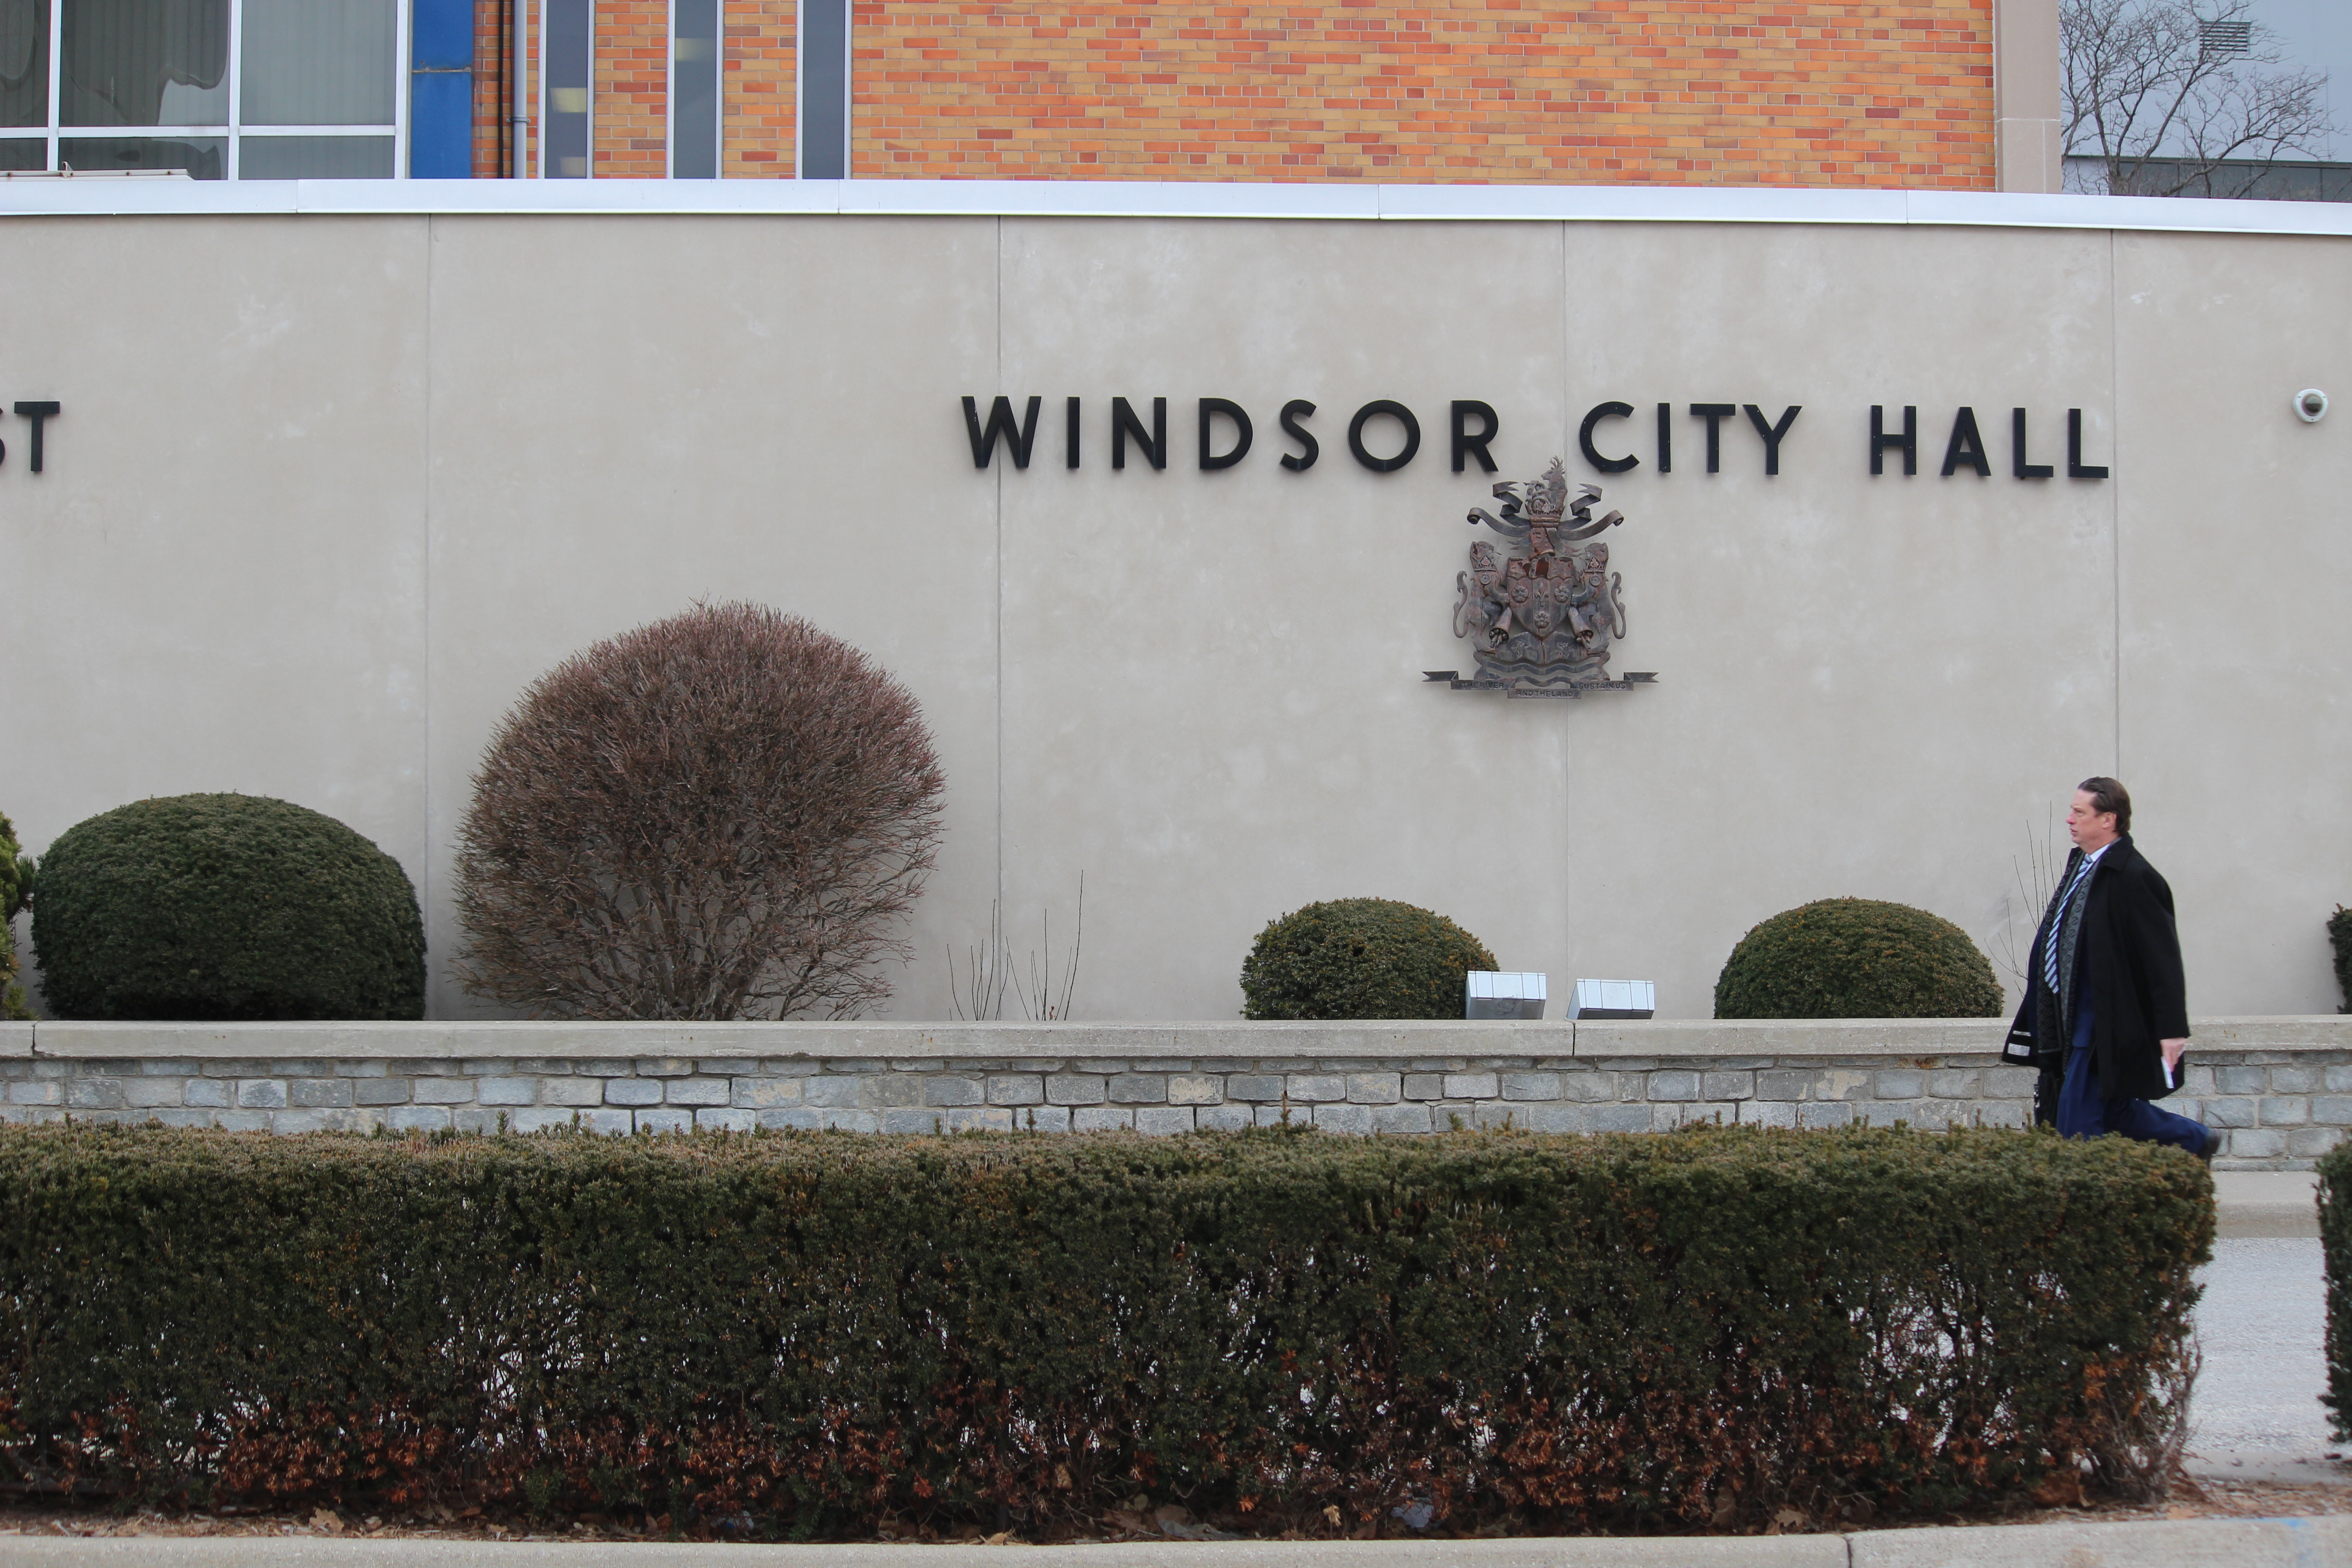 Windsor City Hall, February 8th 2016, Photo by Jess Craymer